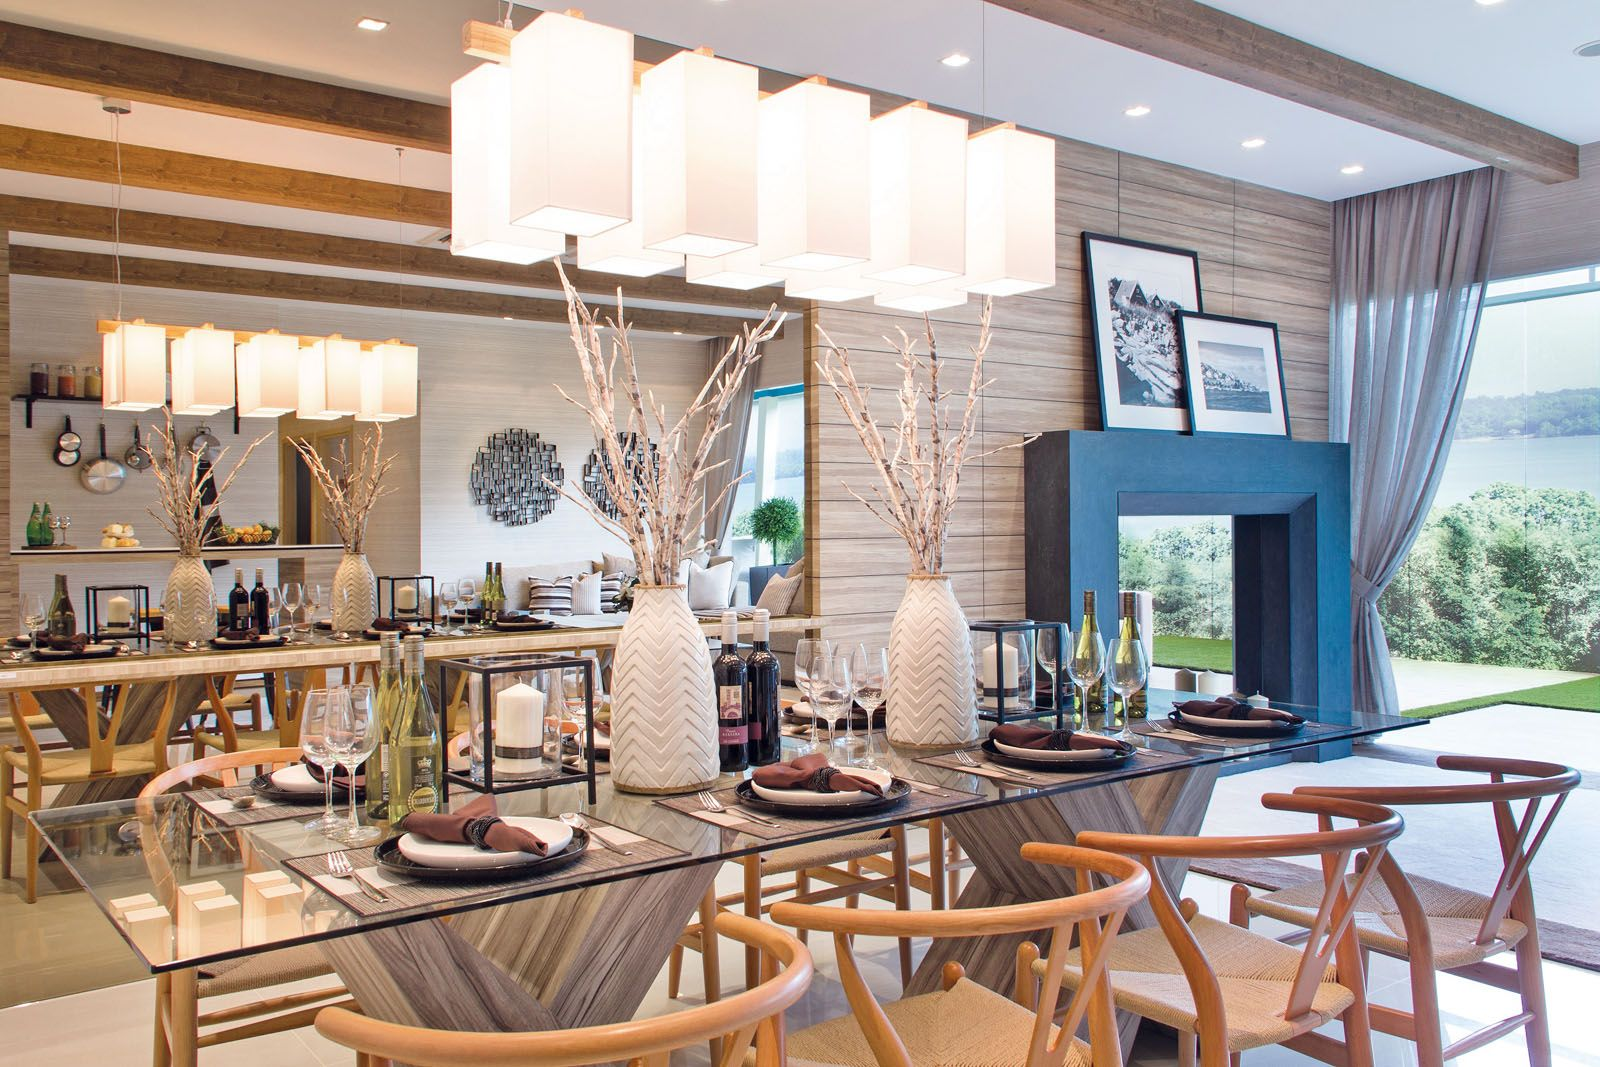 Ask A Designer: How To Create A Waterfront Villa Look For Your Home